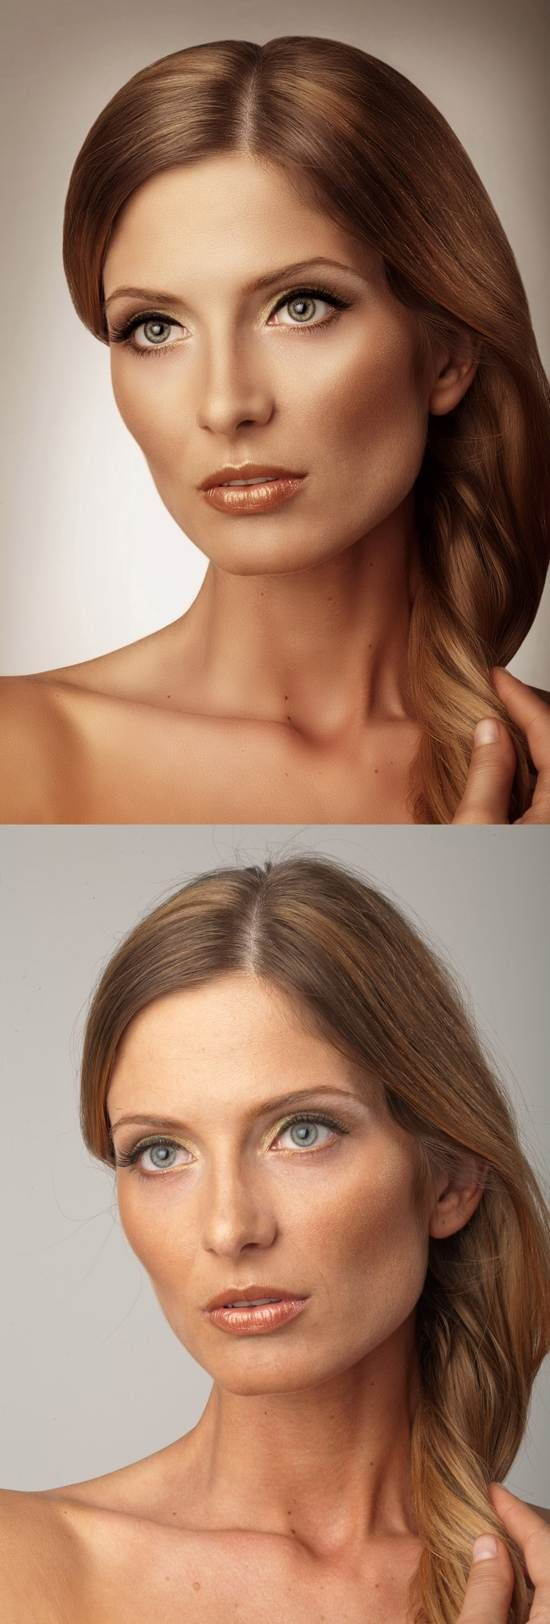 Amazing & Professional Before After Photo Retouching   Design Inspiration. Free Resources & Tutorials